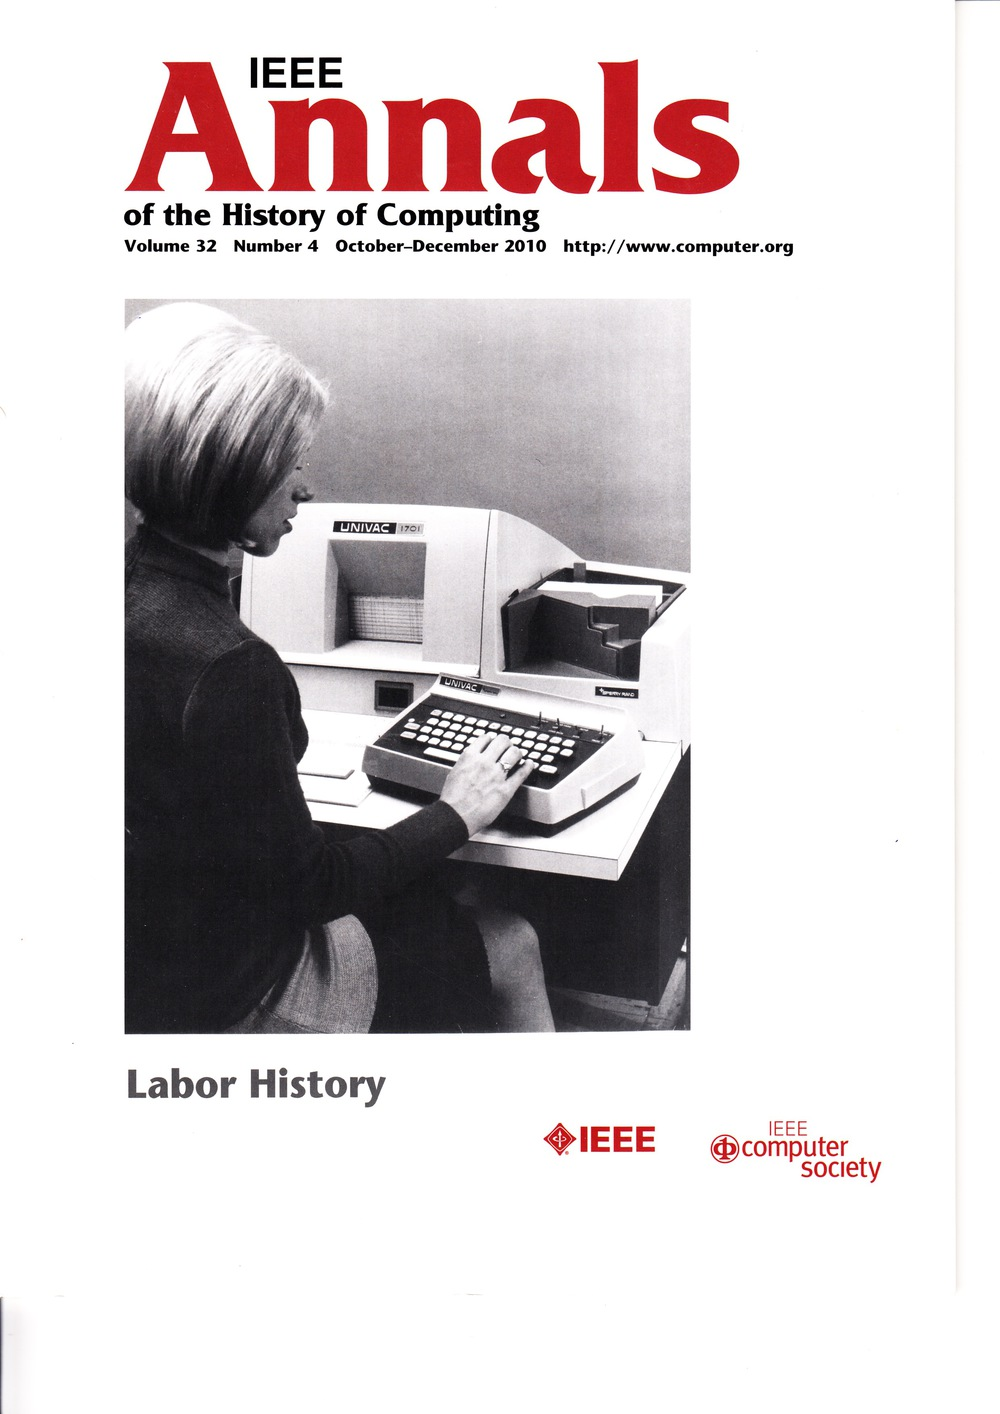 Scan of Document: IEEE Annals of the History of Computing - October-December 2014